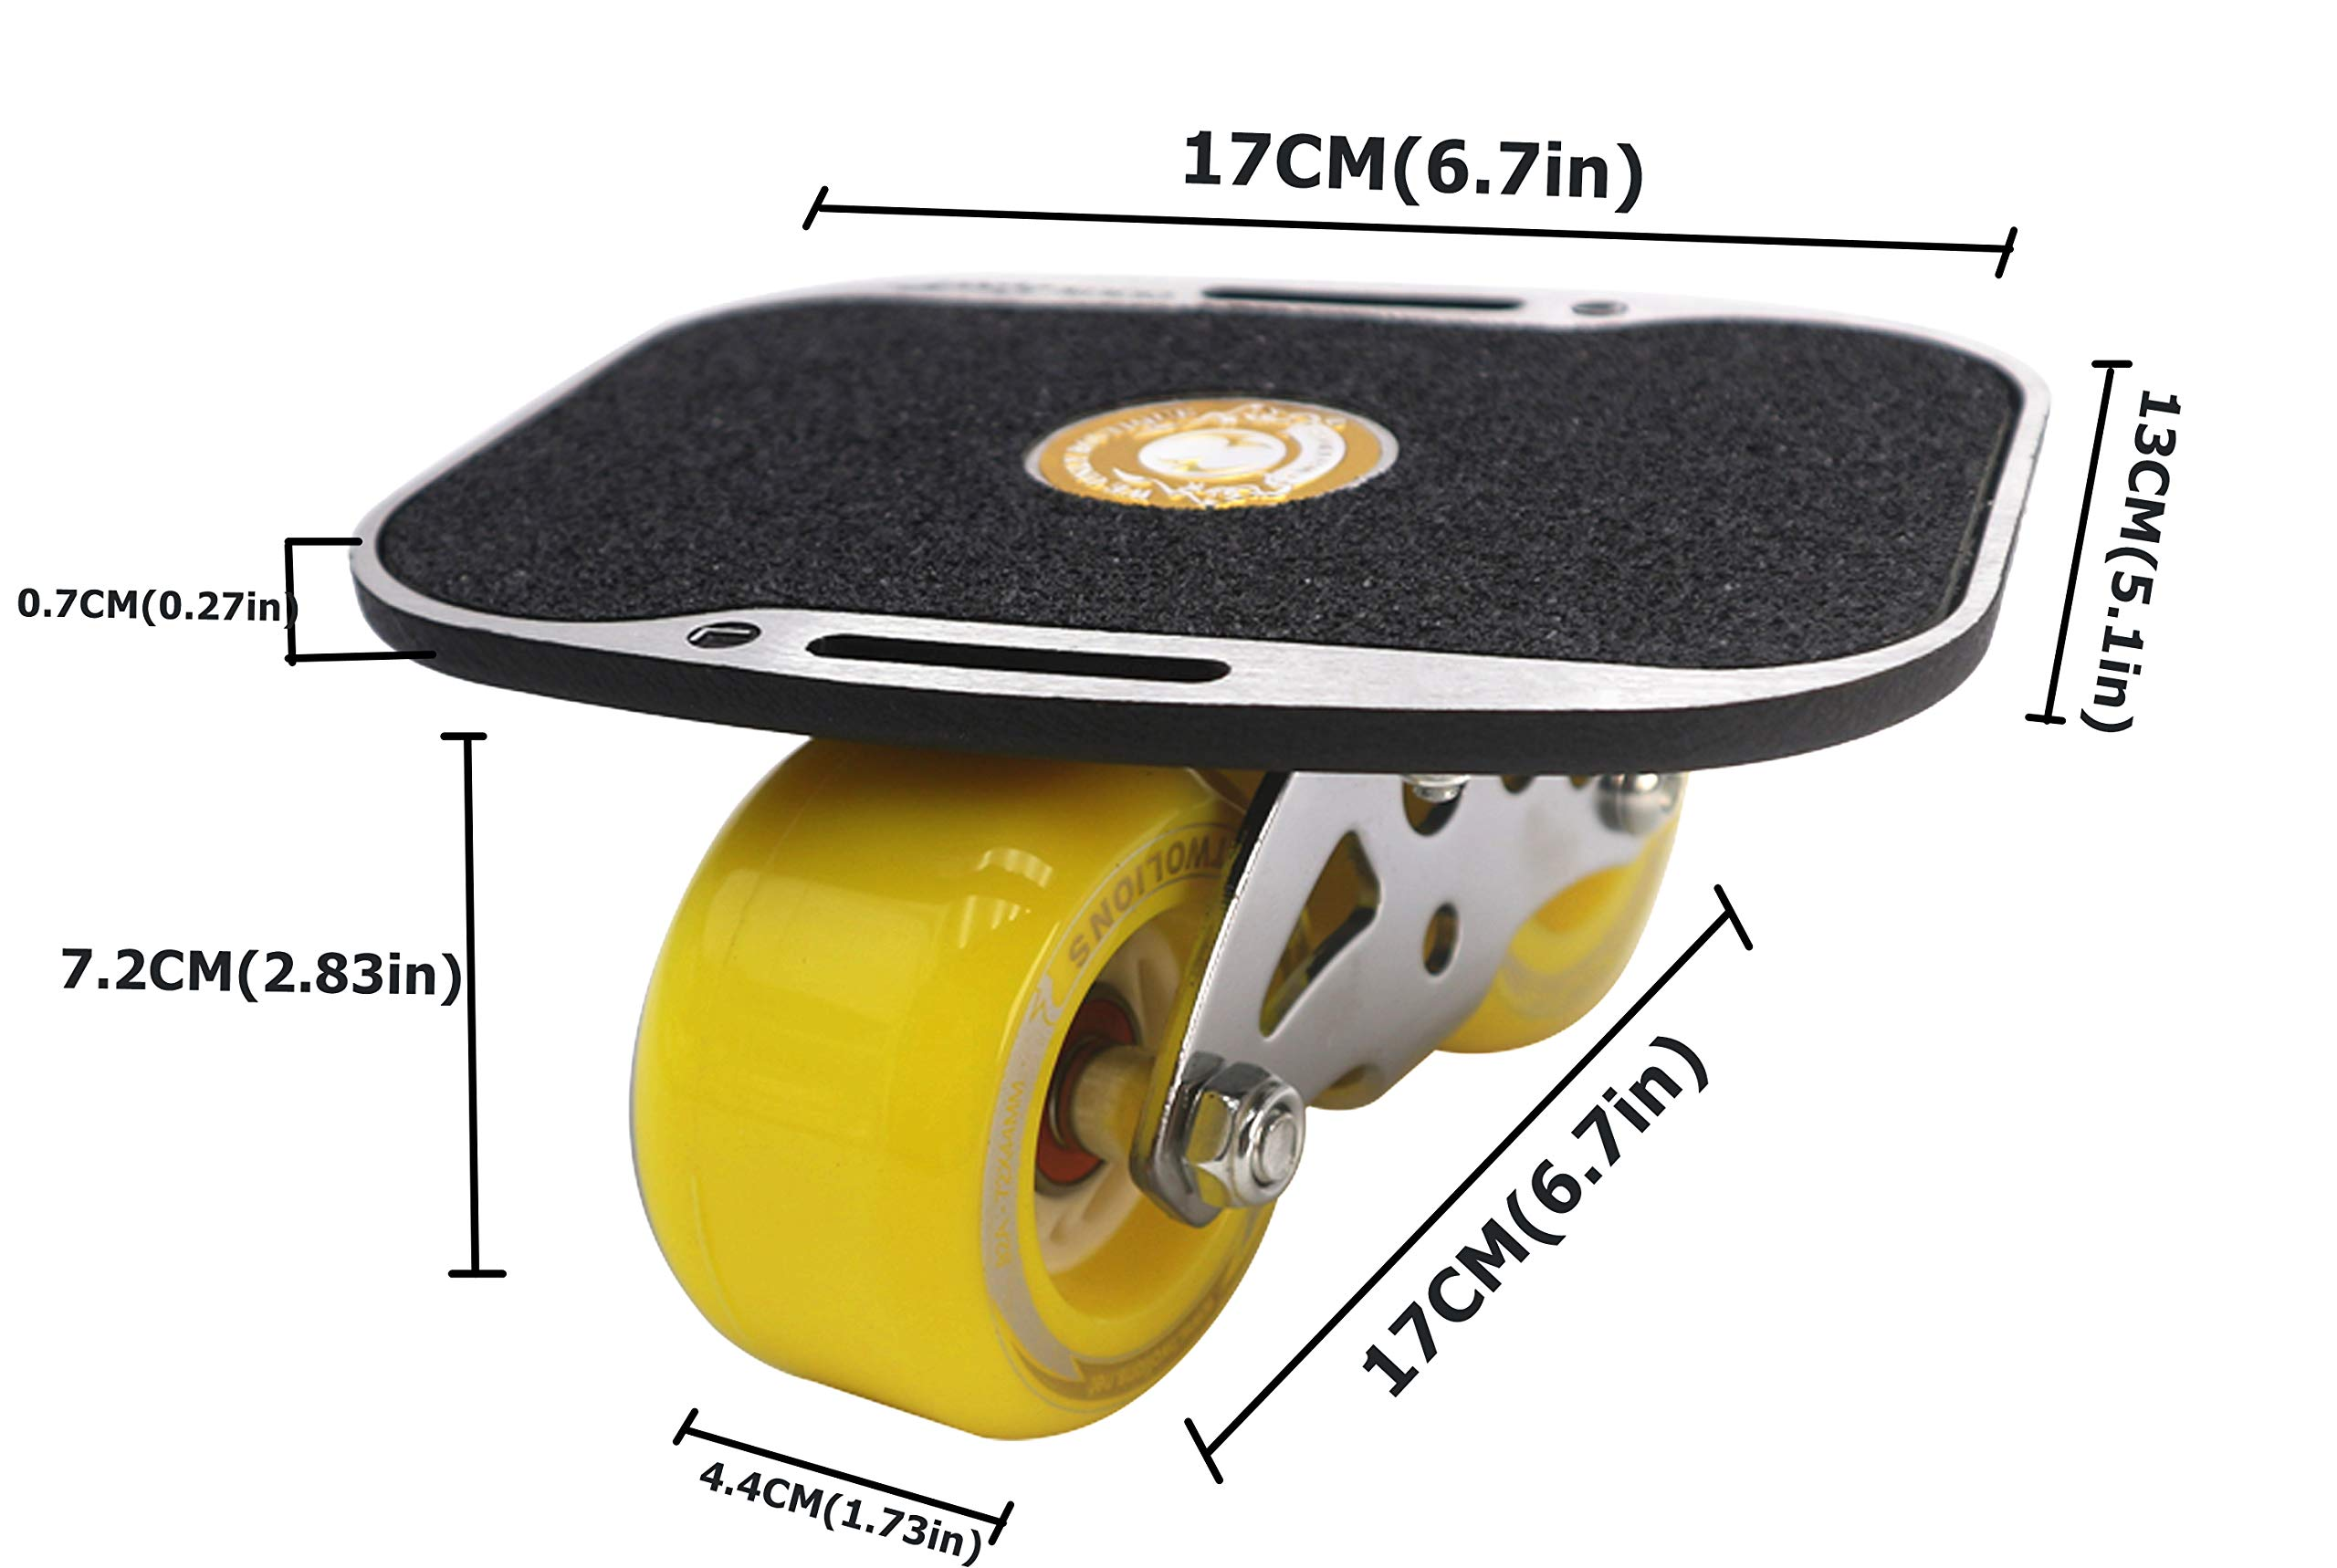 Roller Road Drift Skates Plate Pro Skates Anti-Slip Board Portable Split Skateboard All-in-one Aluminum Alloy with PU Wheels(Yellow) by Smartuan (Image #3)